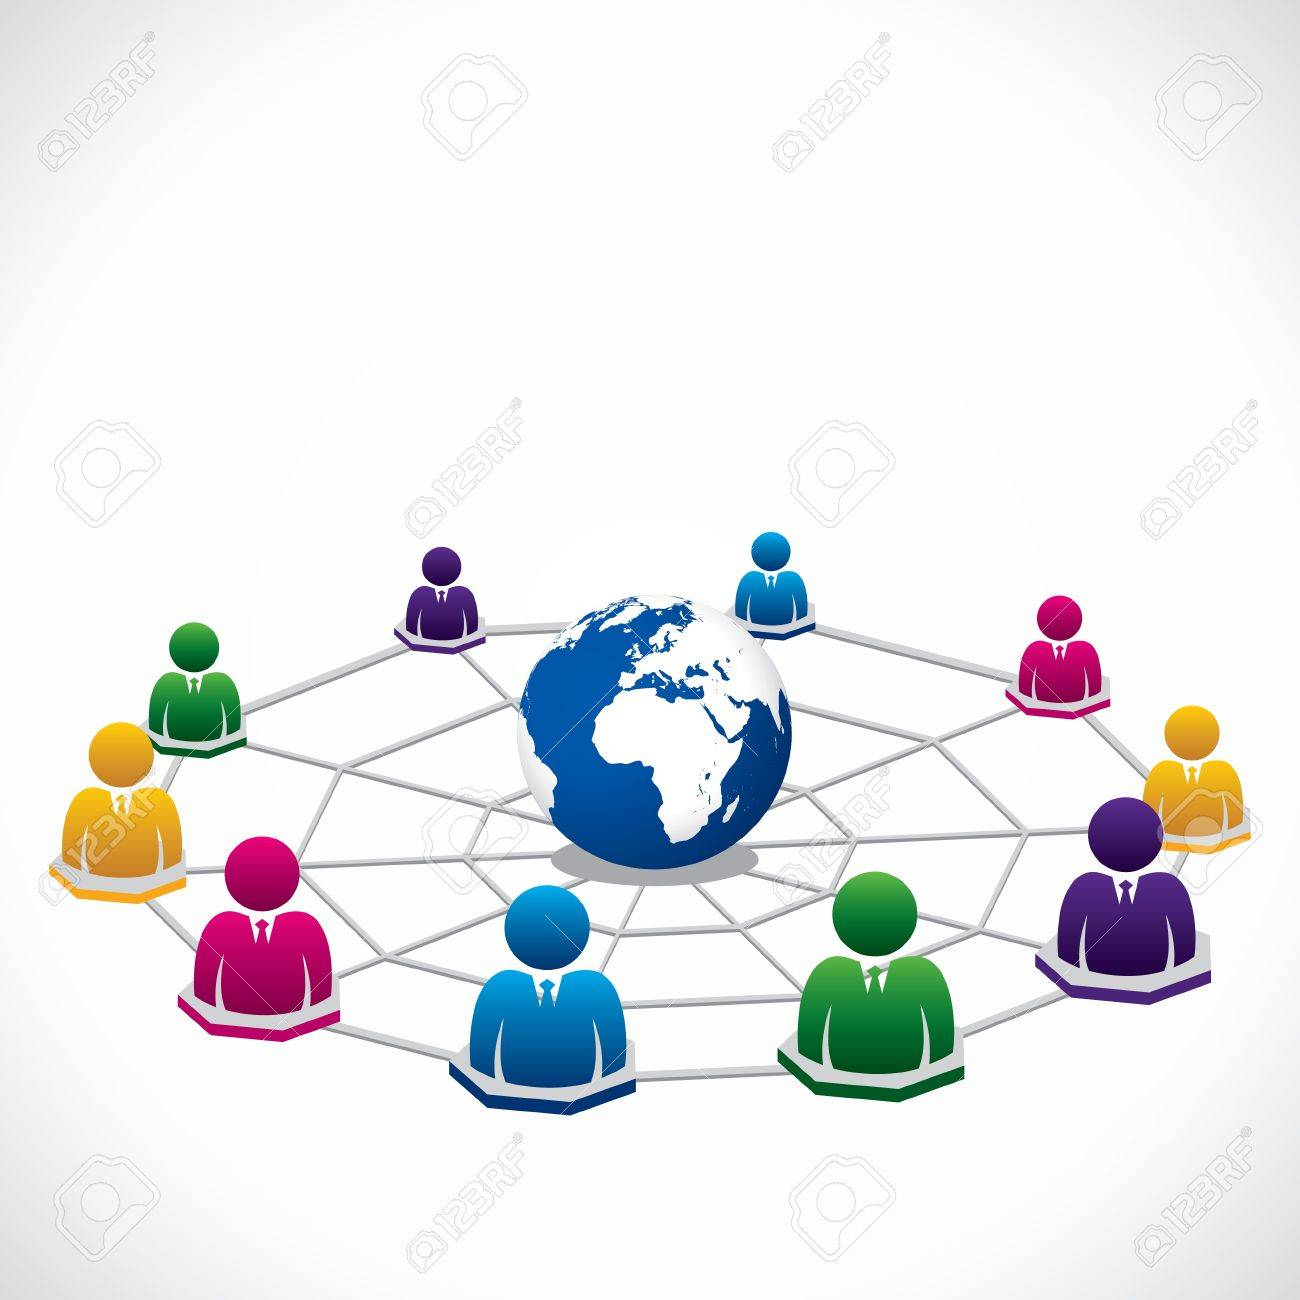 global connection around the world to people Stock Vector - 16845809